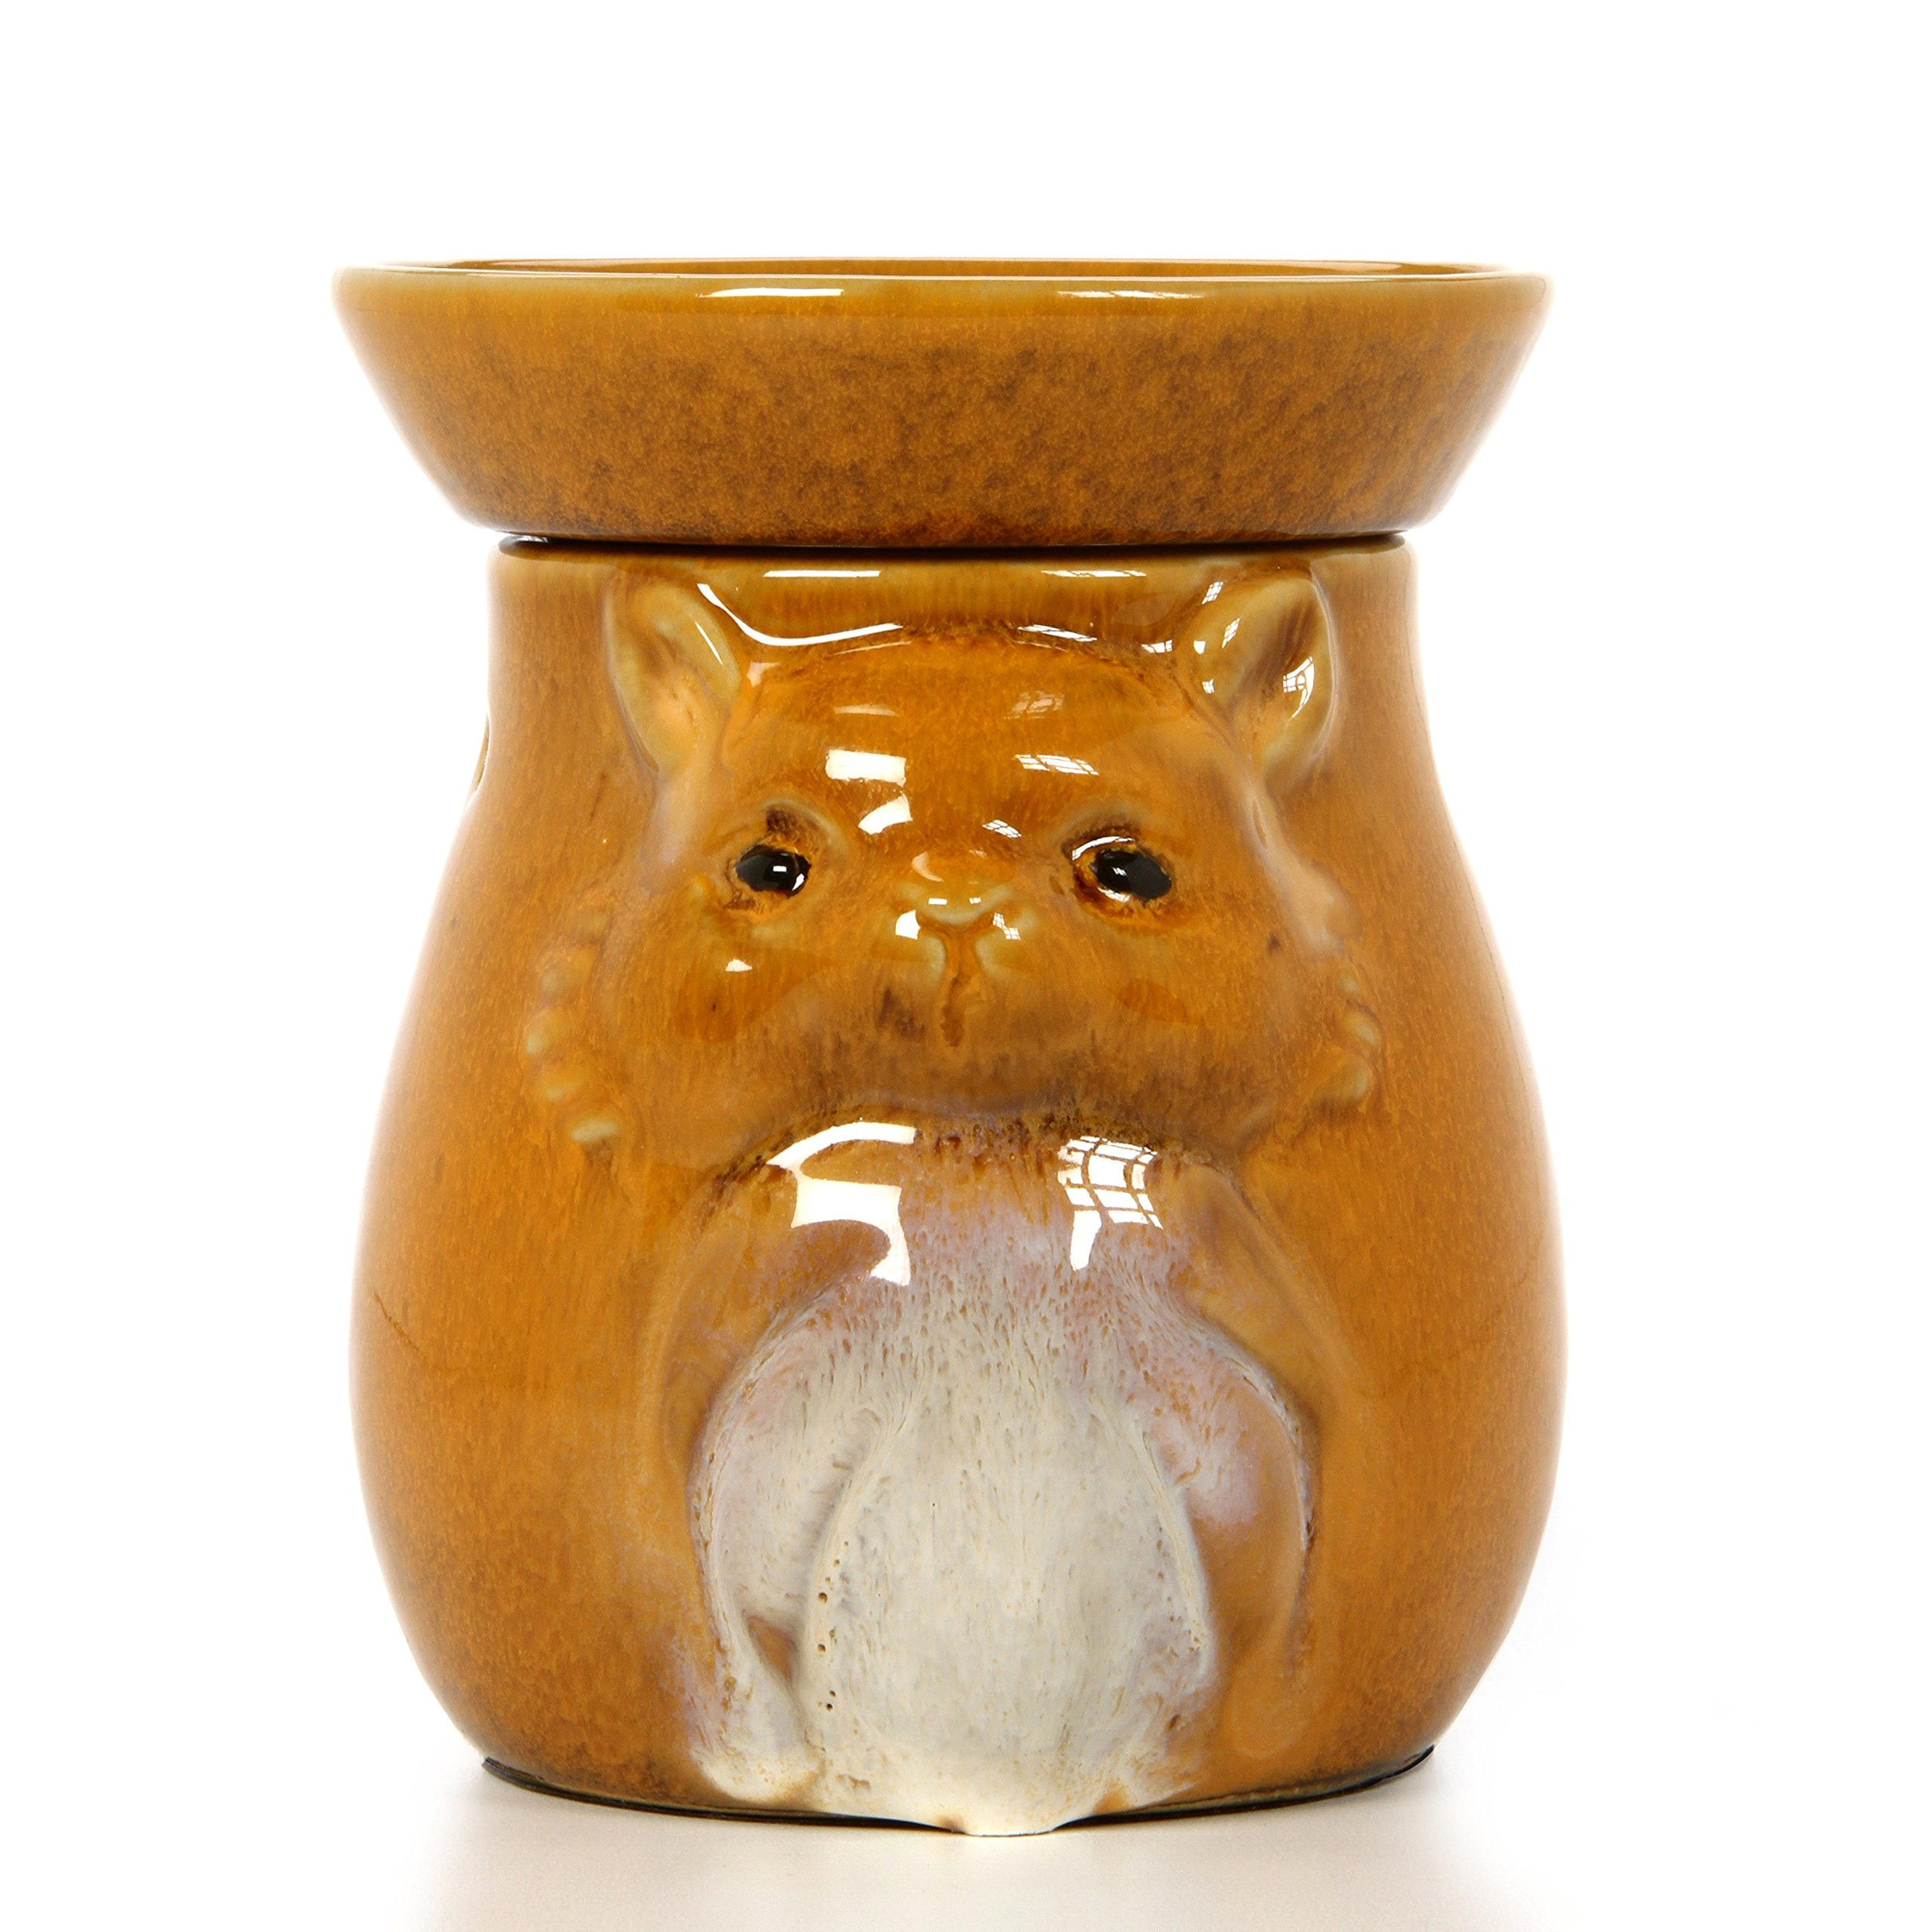 Hosley 5'' High Tan Woodland Animal Ceramic Electric Oil Warmer. Ideal Gift for Wedding, Spa and Aromatherapy. Use Brand Fragrance Oils, Essential Oils and Wax Melts/Cubes. P2